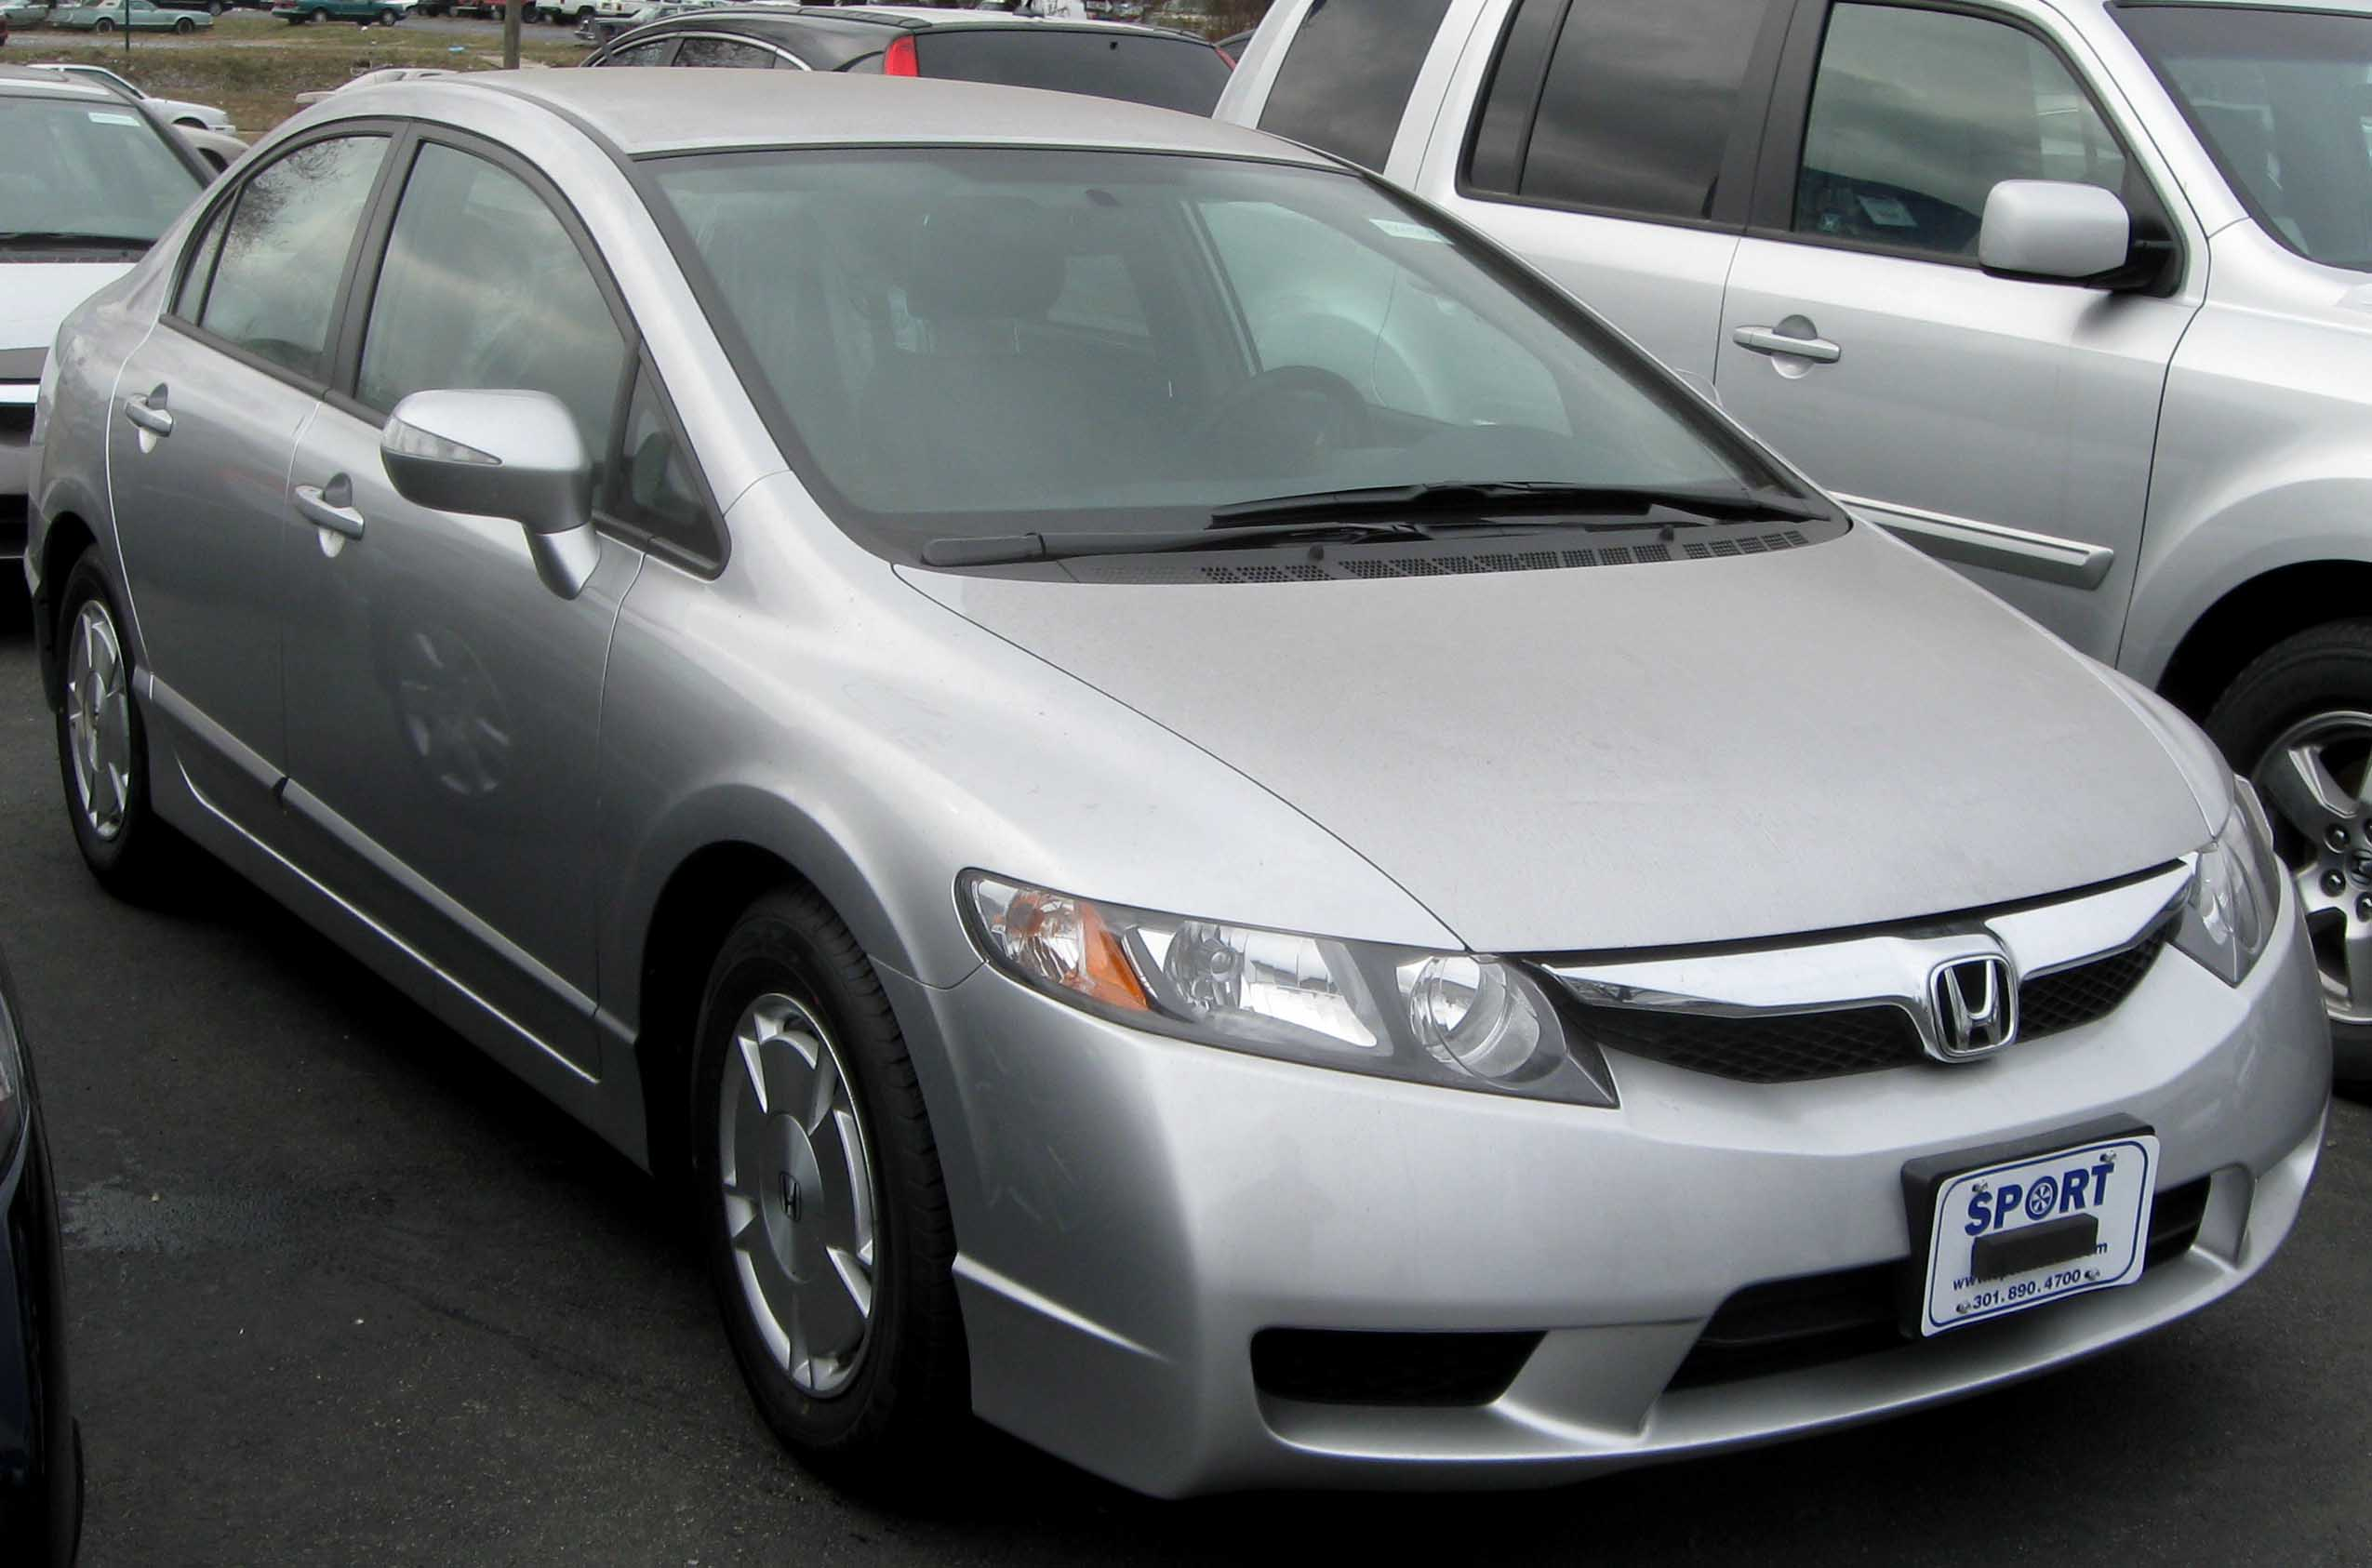 File2009 Honda Civic Hybrid